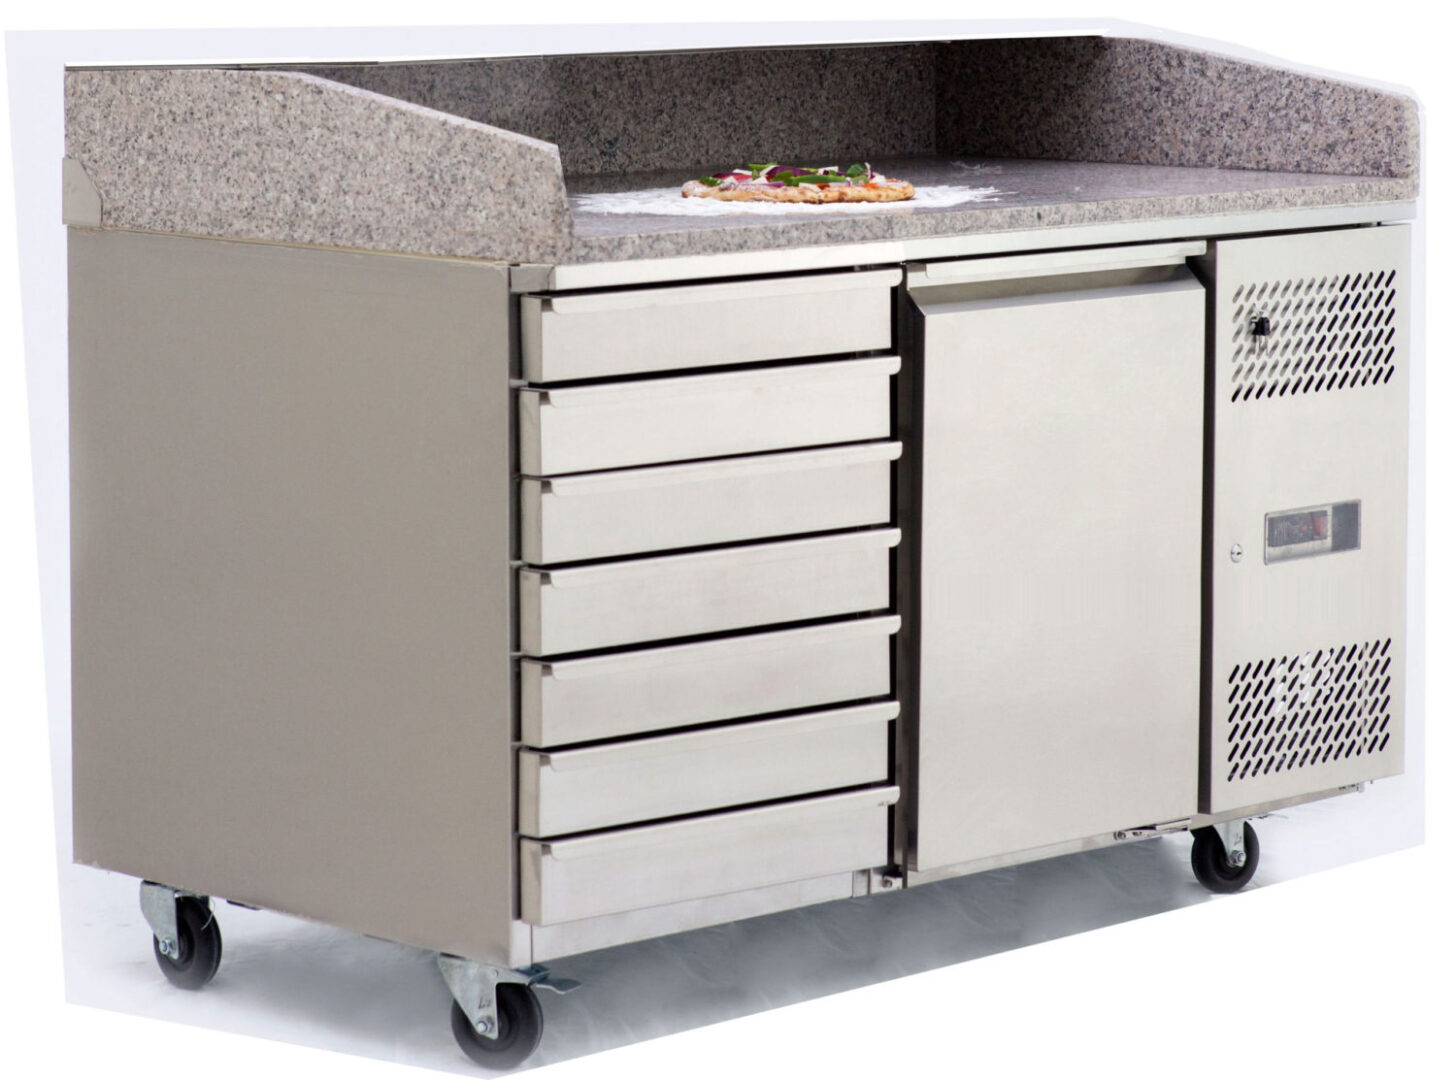 Atosa EPF3490 1 Door Refrigerated Pizza Table with Drawers 1510 mm